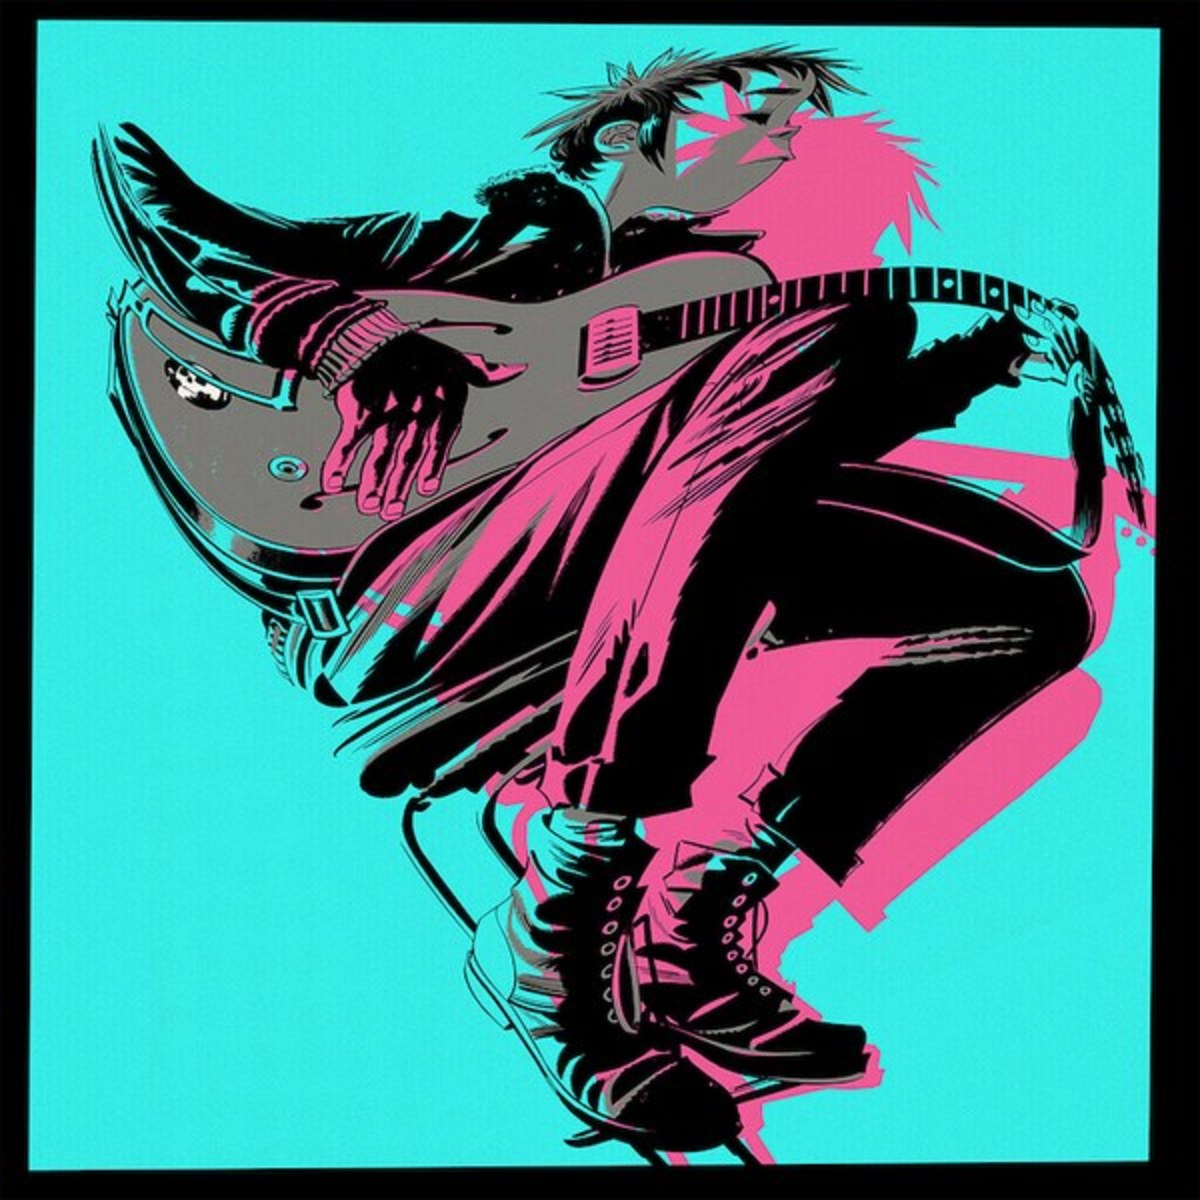 gorillaz-the-now-now-review